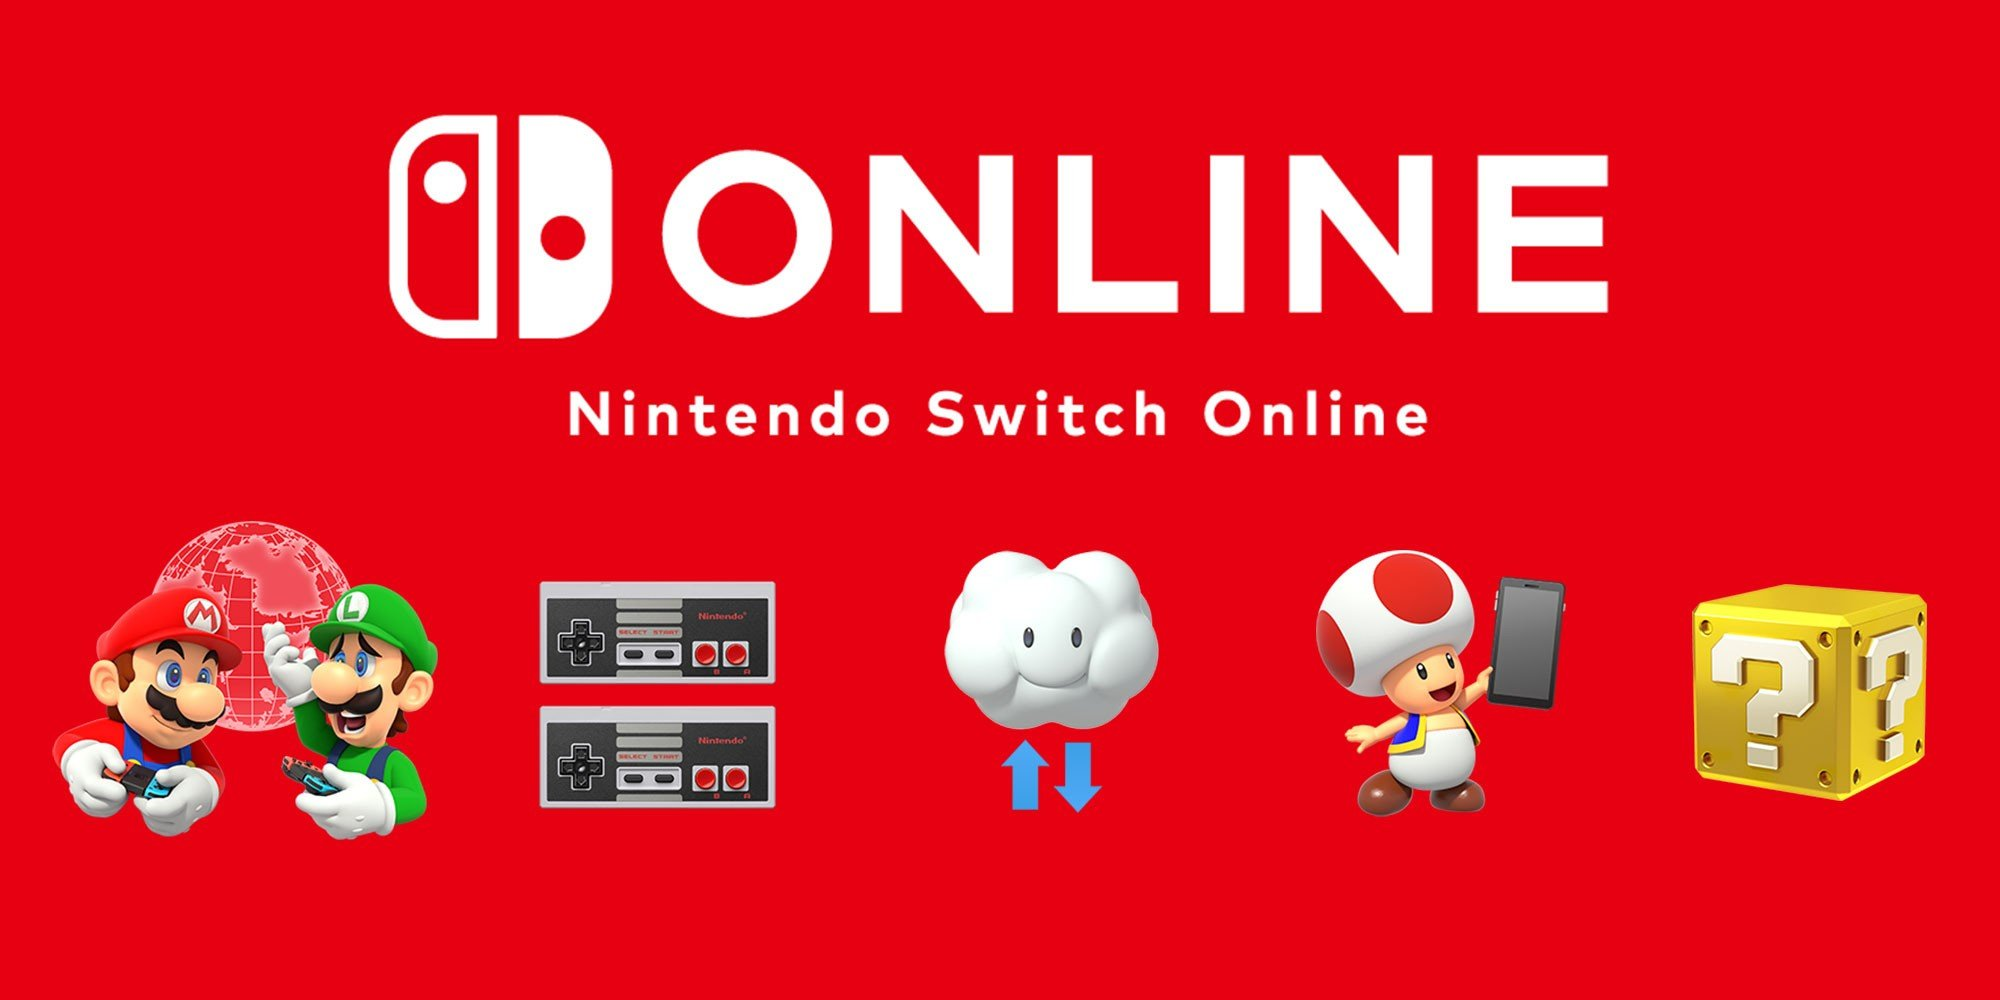 Nintendo is renewing Switch Online trial periods, even if you redeemed one already screenshot